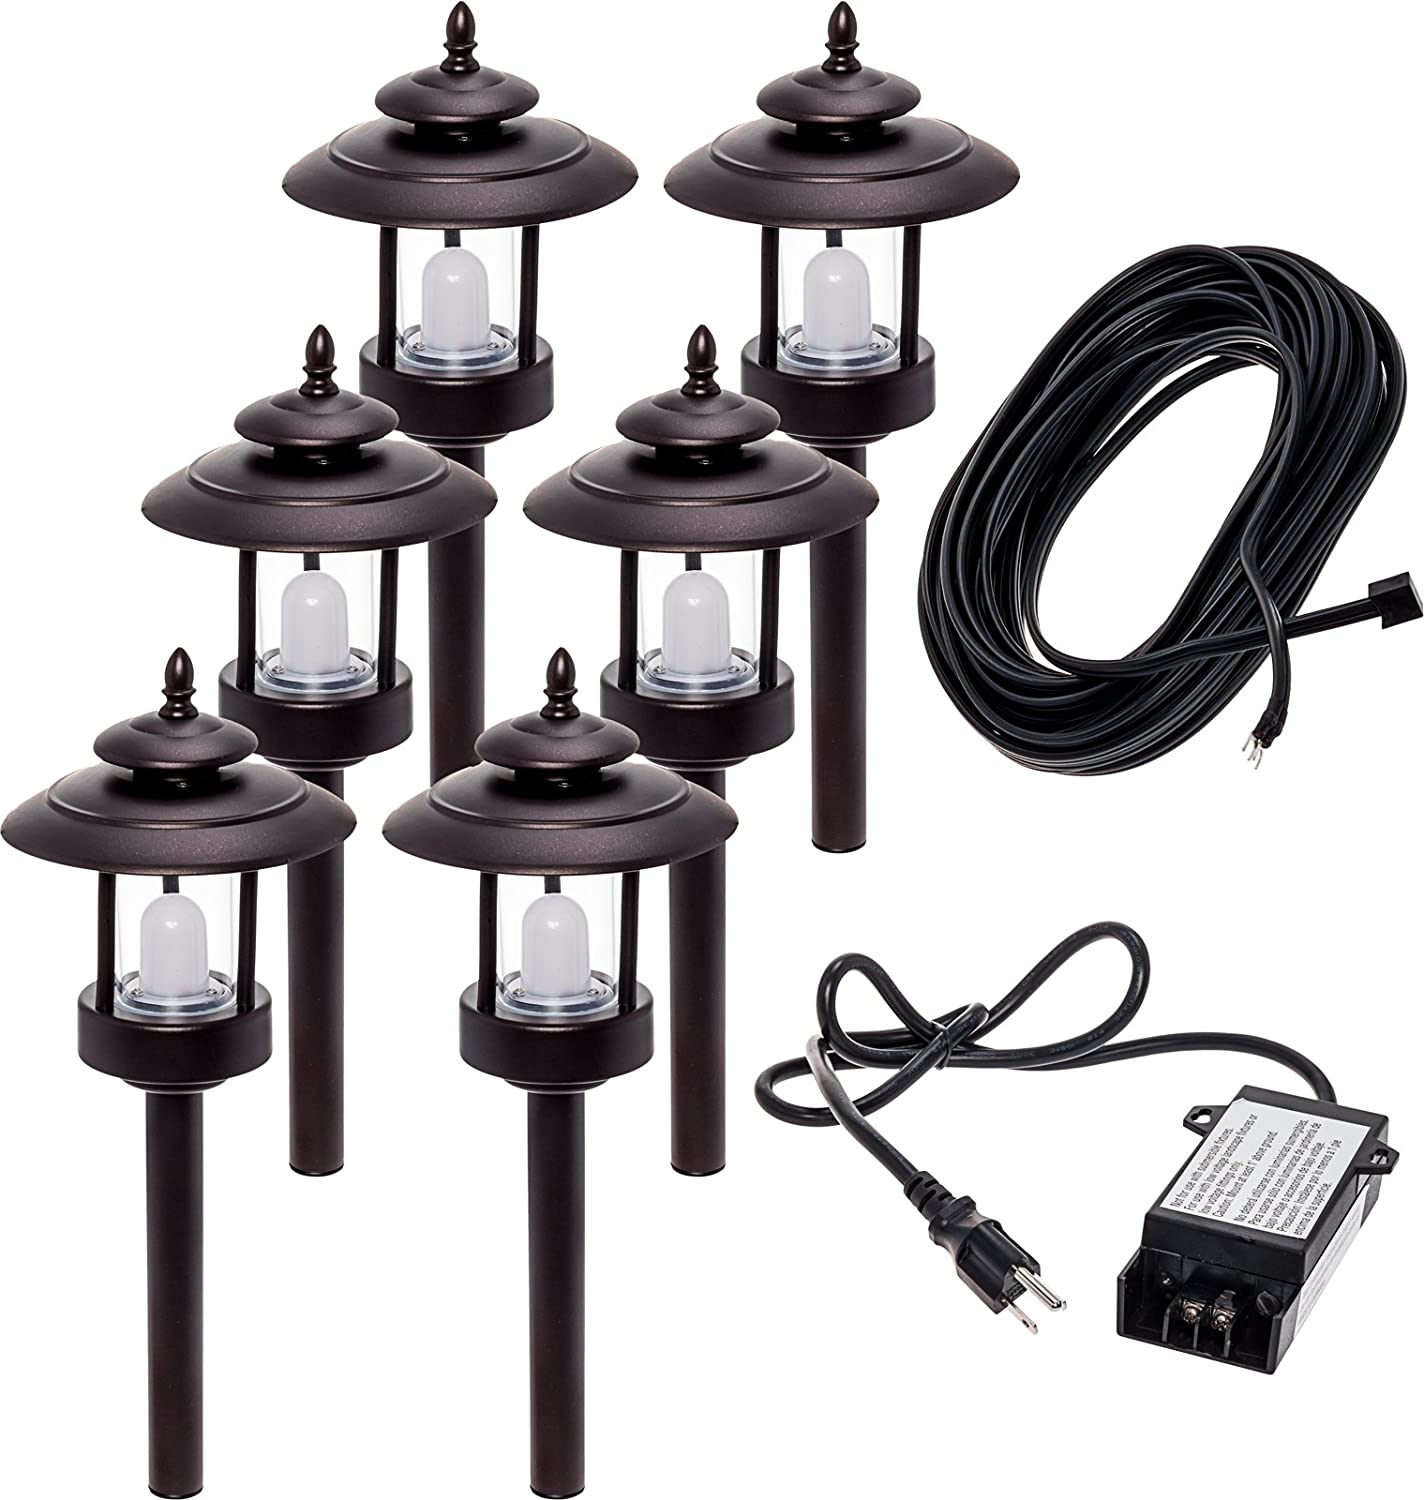 6 Pack Westinghouse 100 Lumen Low Voltage LED Pathway Light Landscape Kit (Bronze)